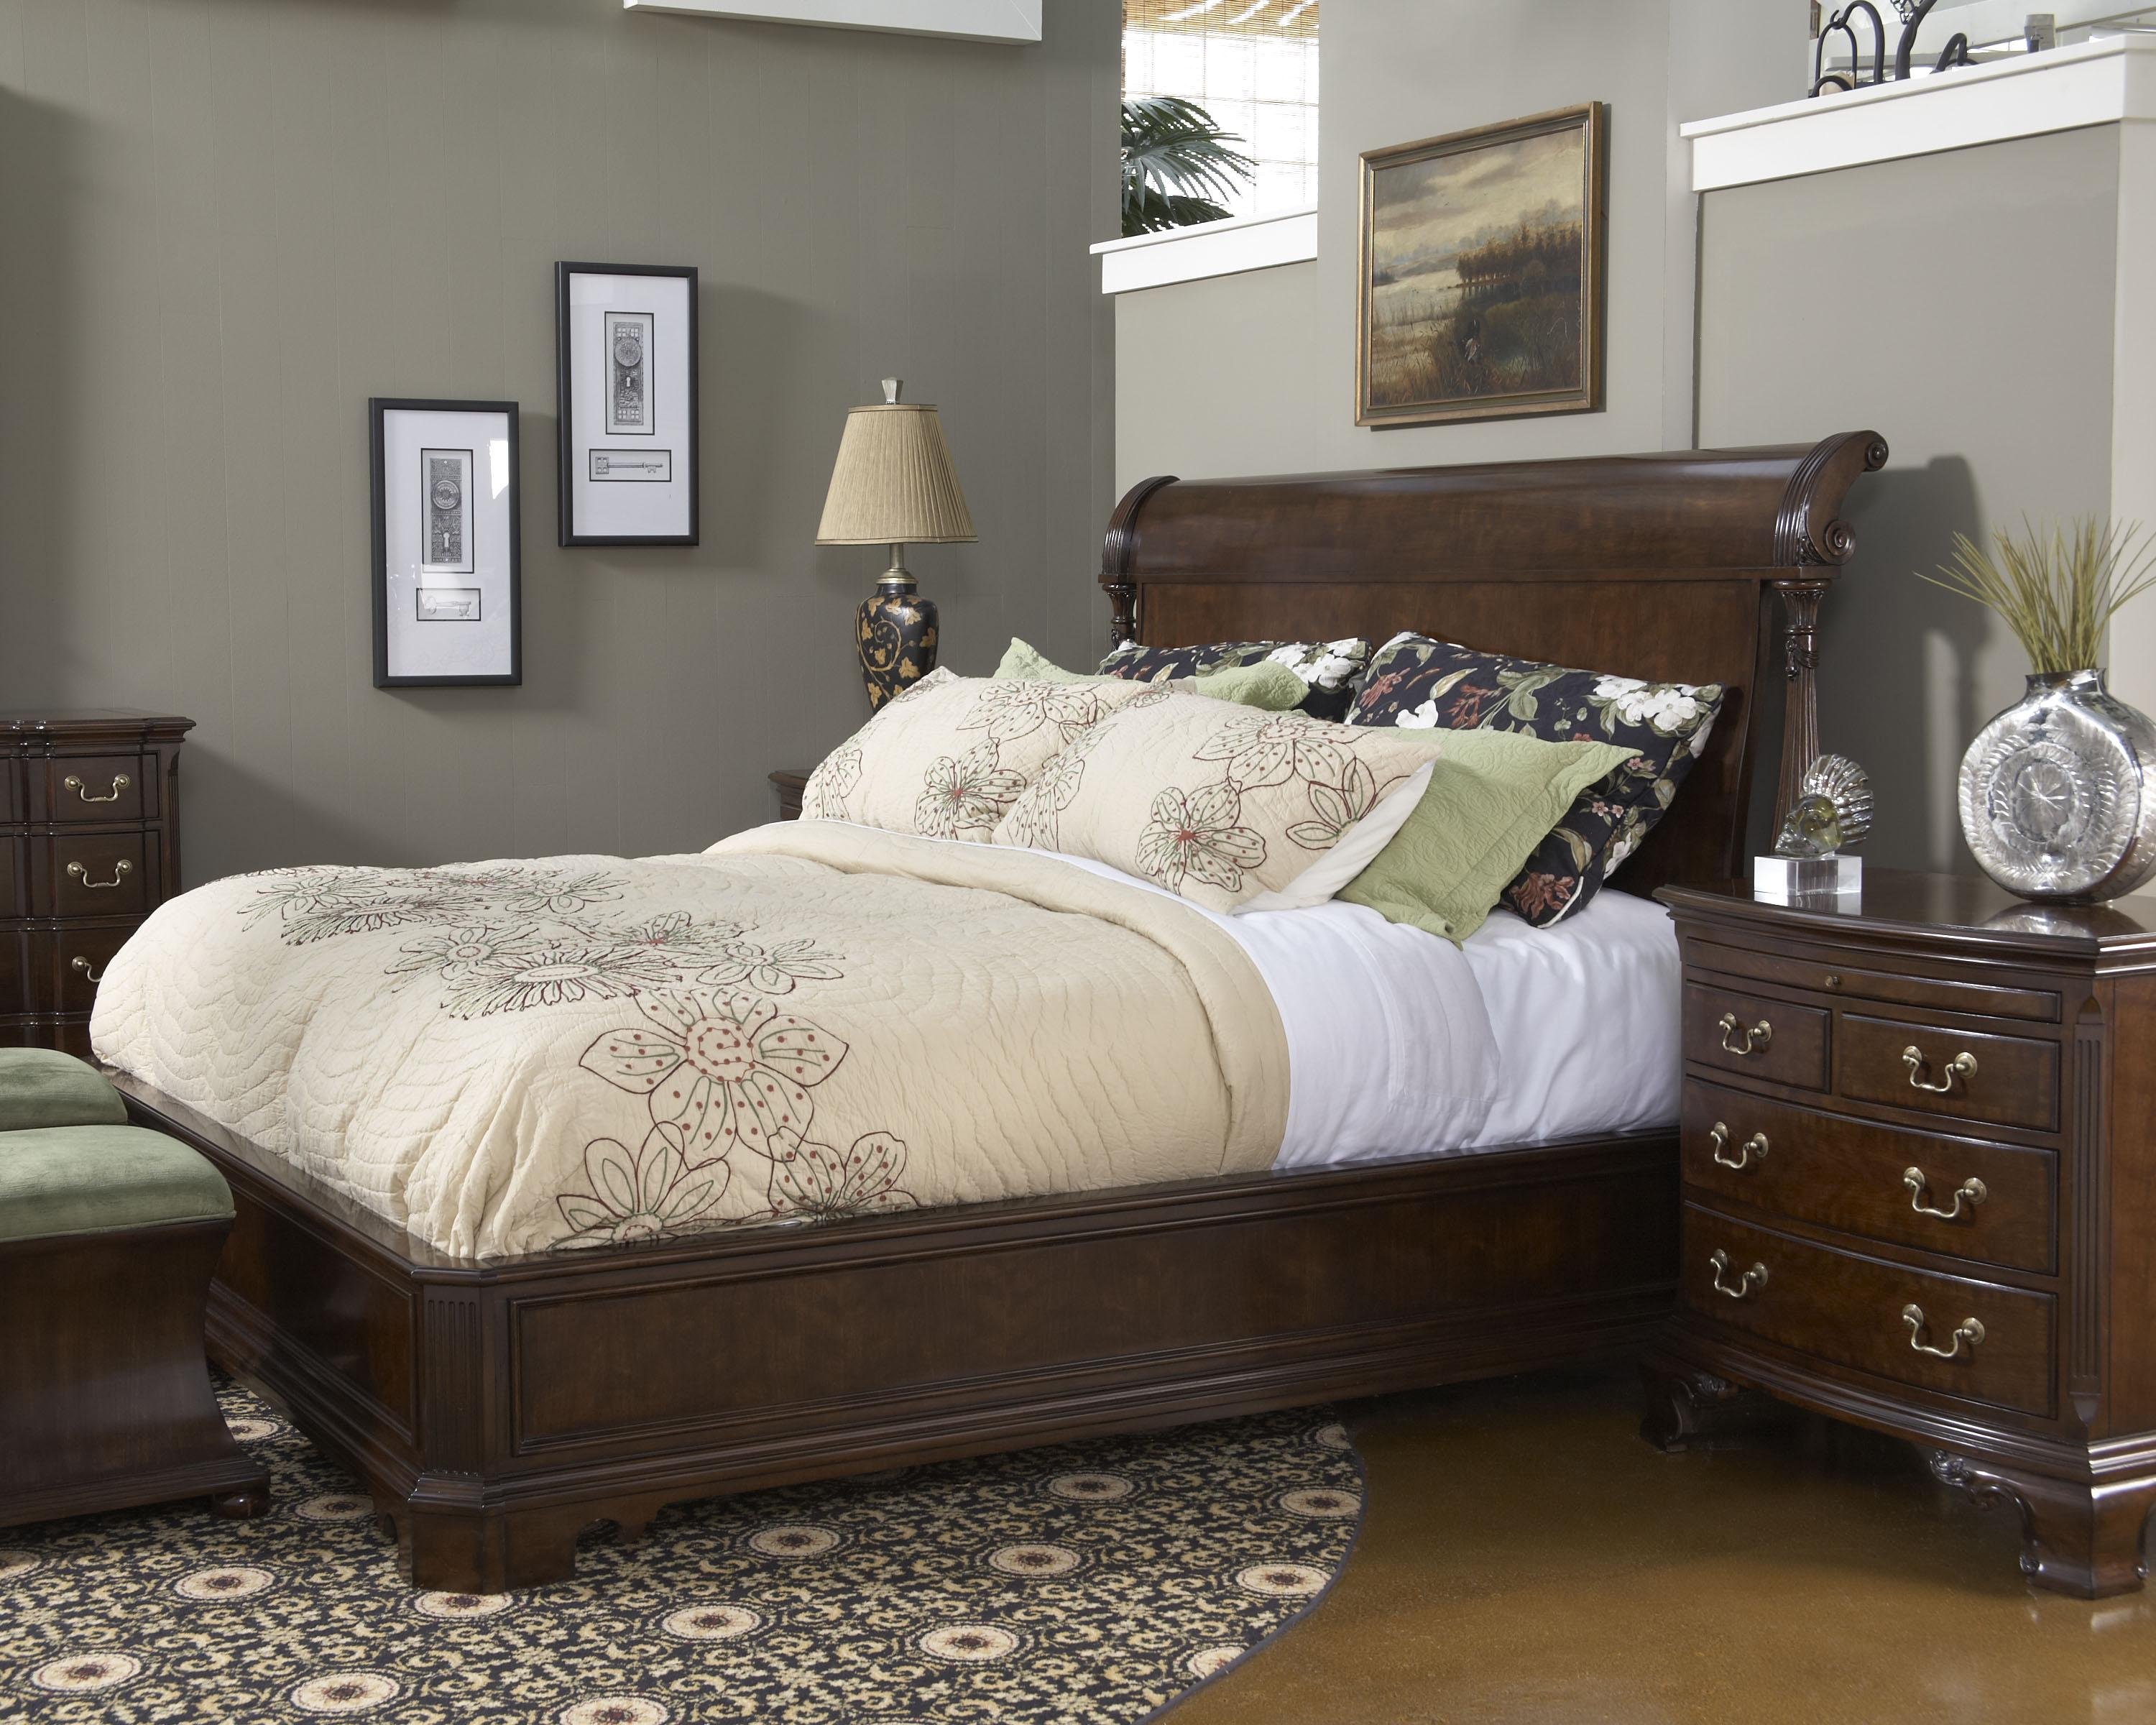 fine furniture design american cherry bedroom bench with rolled